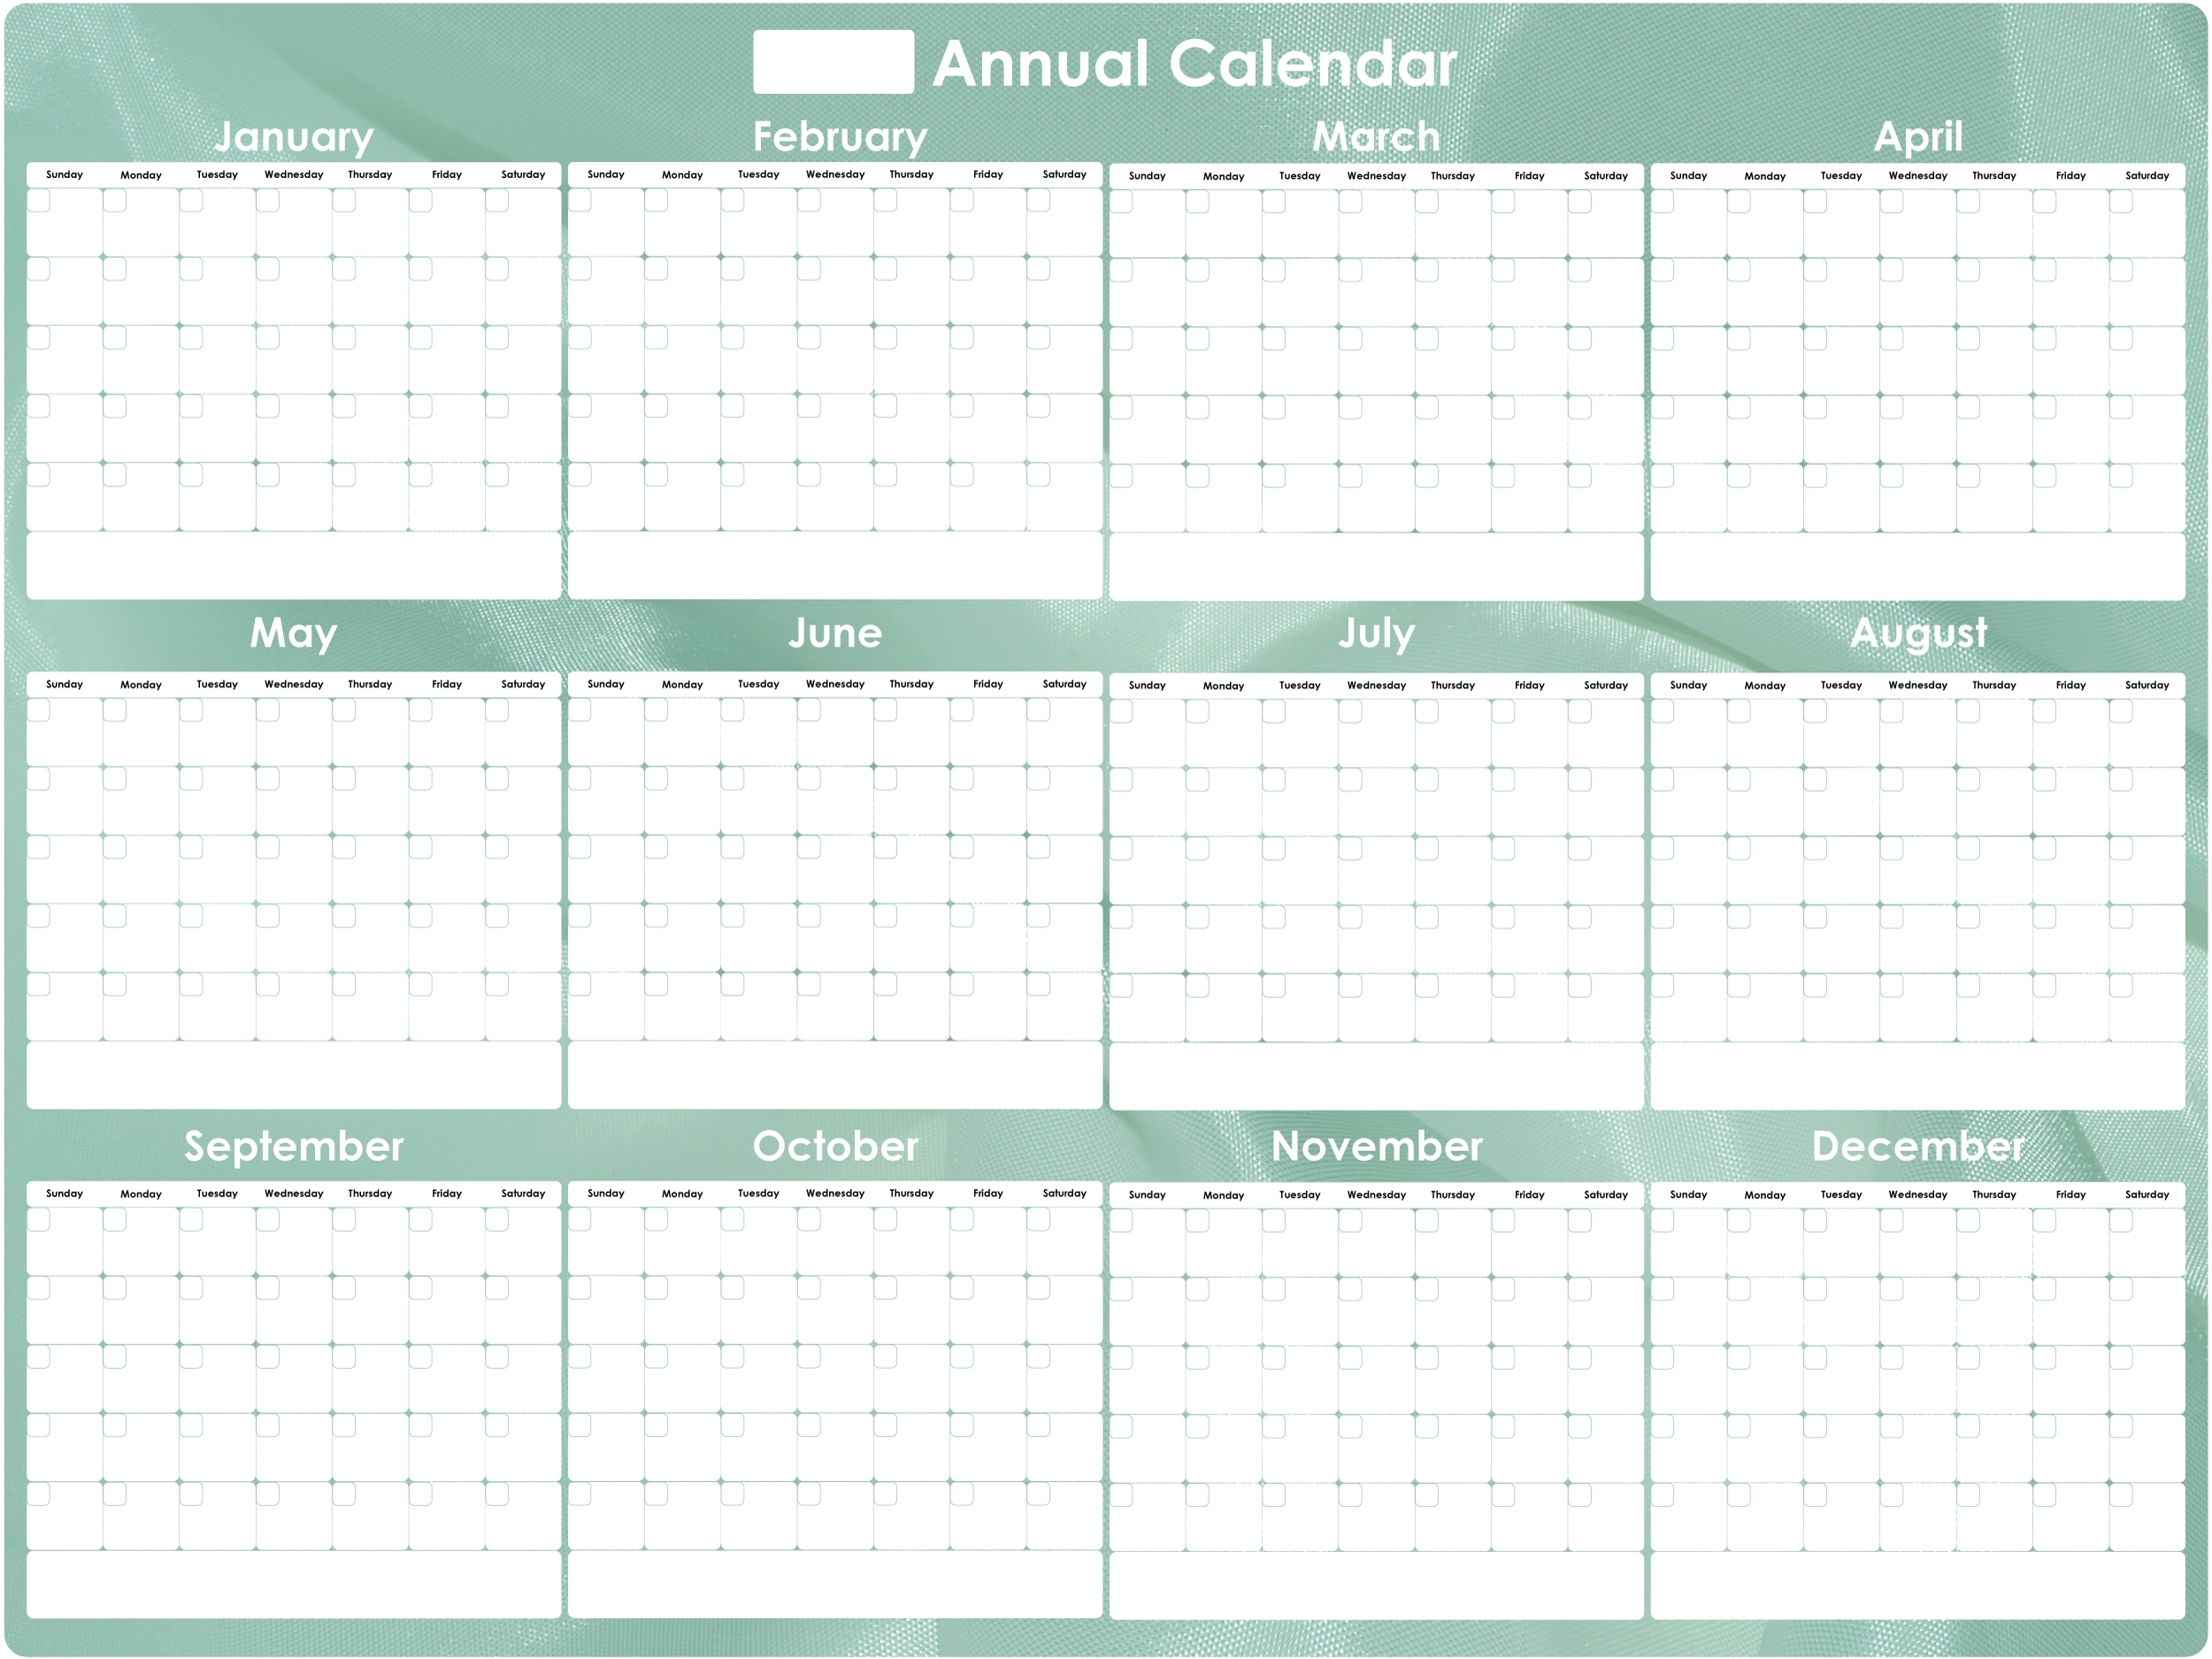 Everase Re-Stic Dry Erase Surface – Annual Calendar, 3 X 4 Ft.